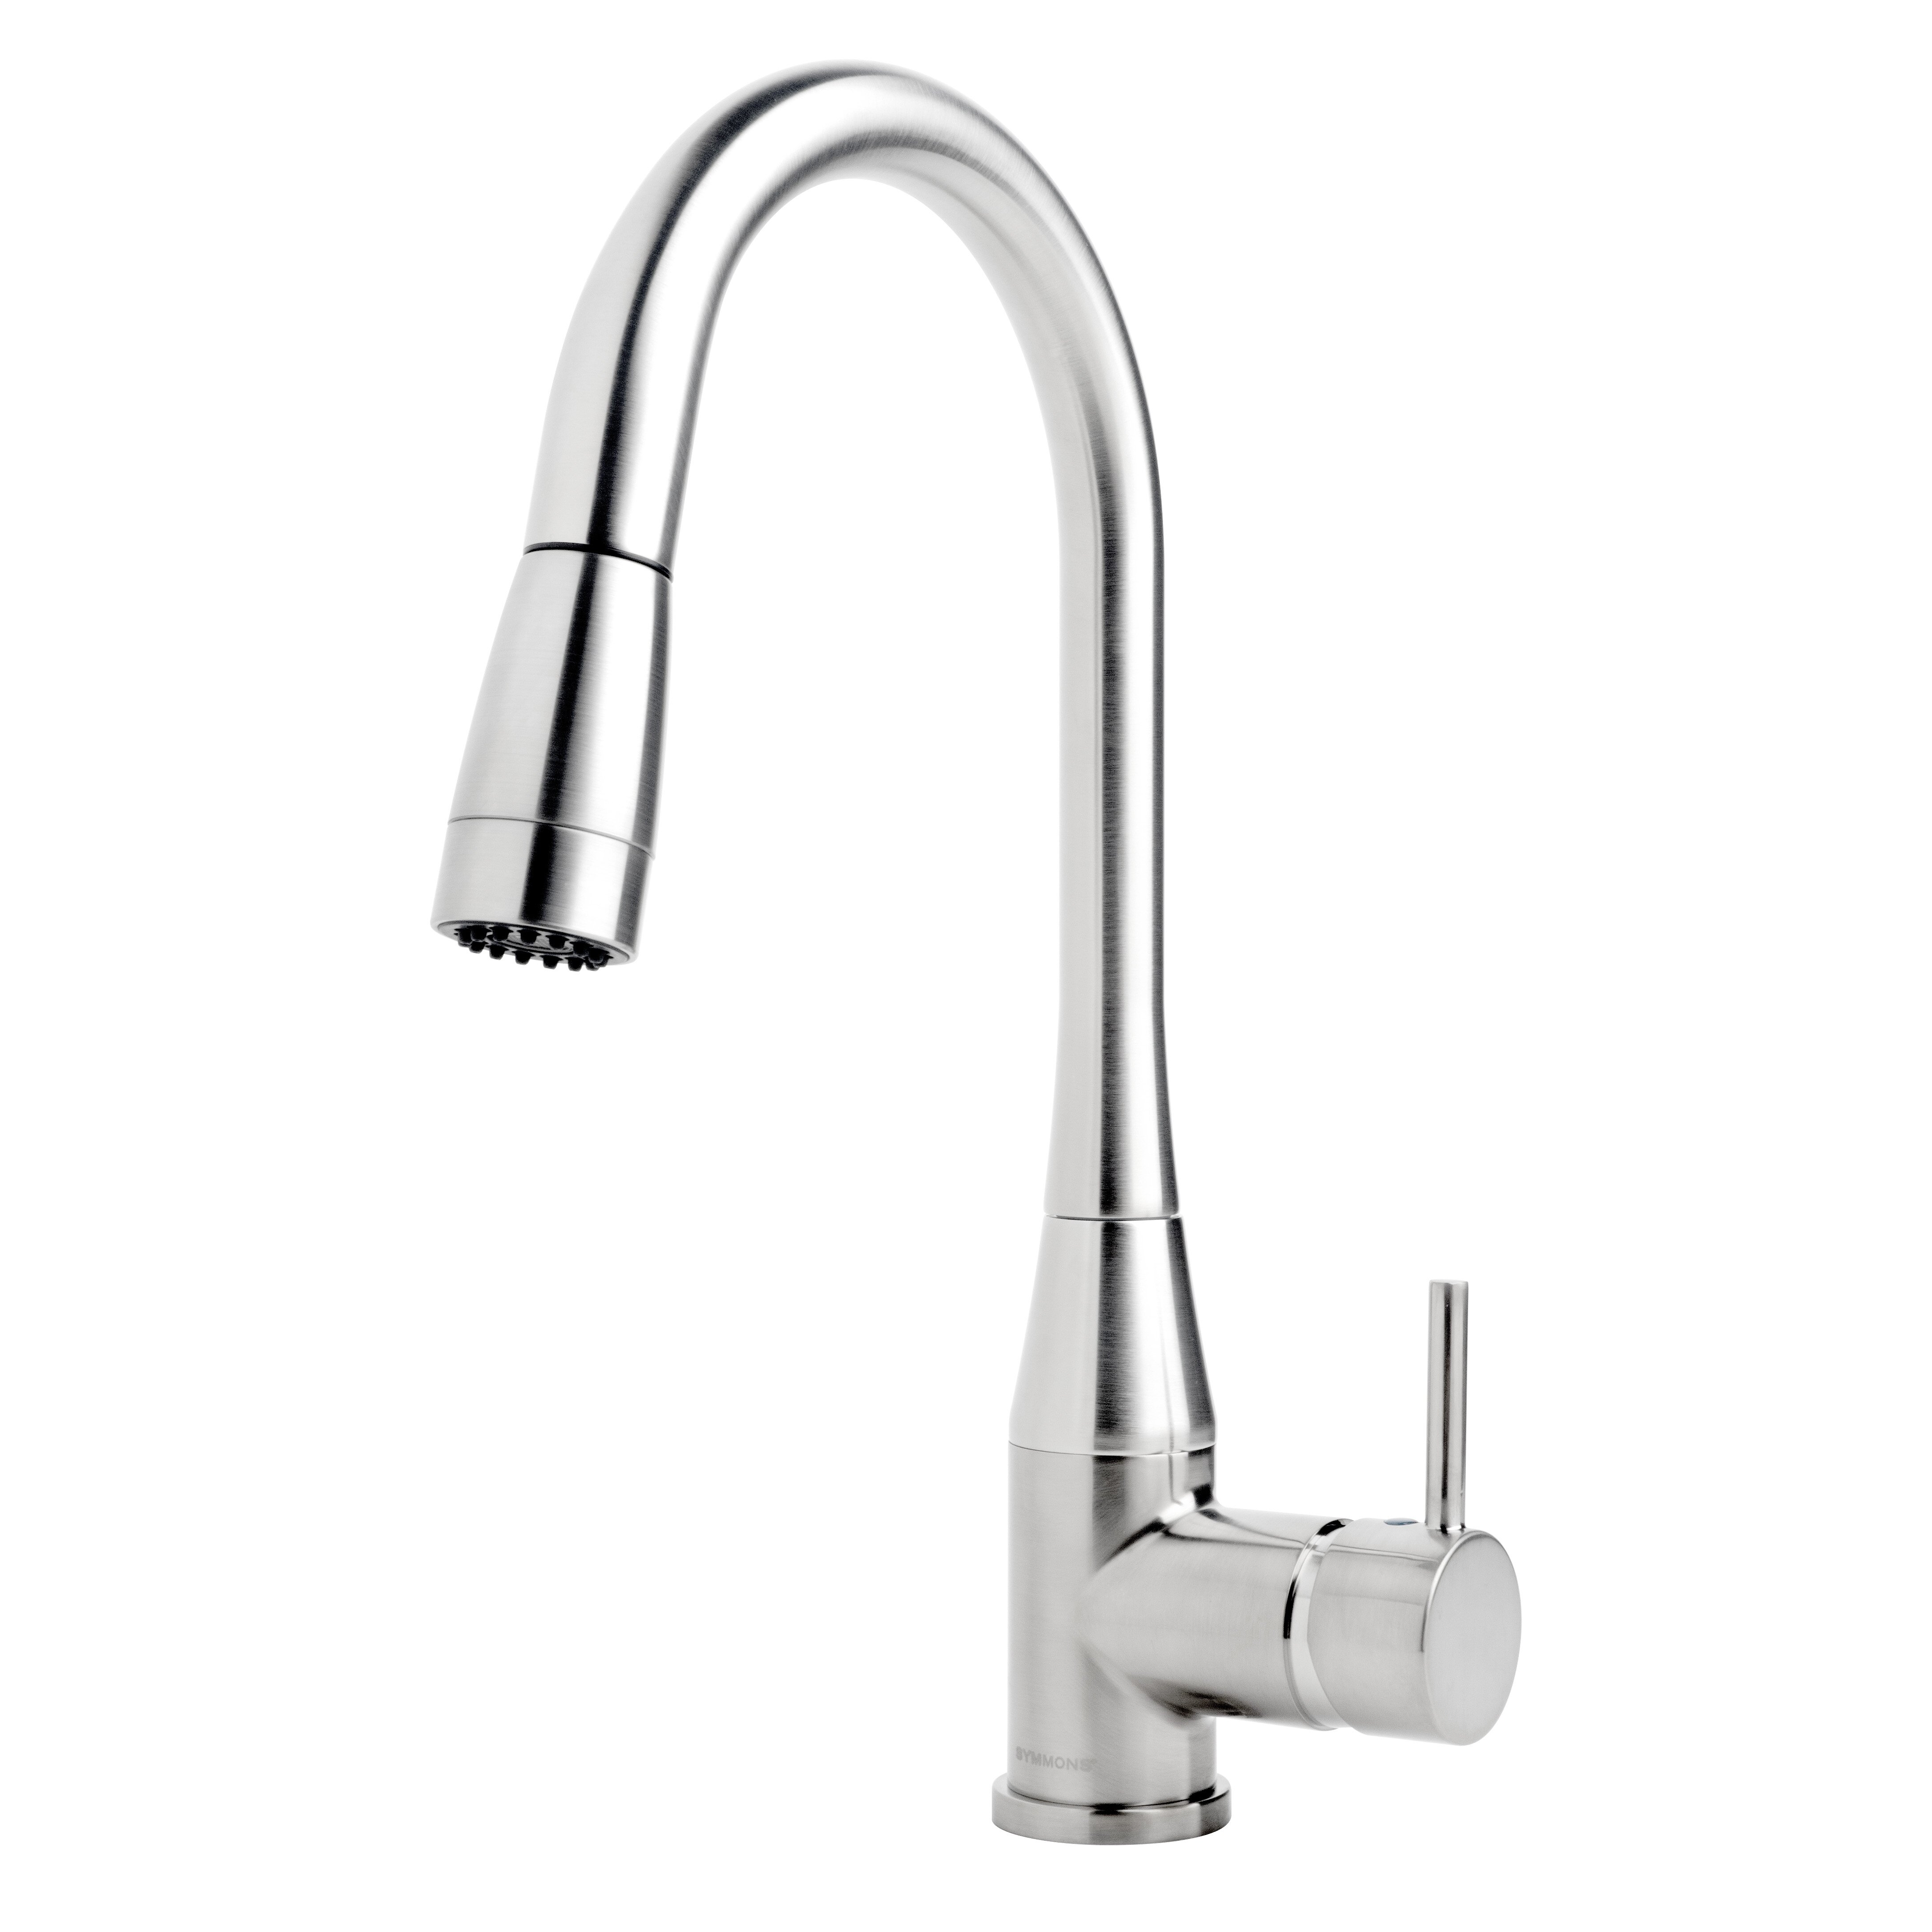 Symmons Sereno Single Handle Deck Mounted Kitchen Faucet